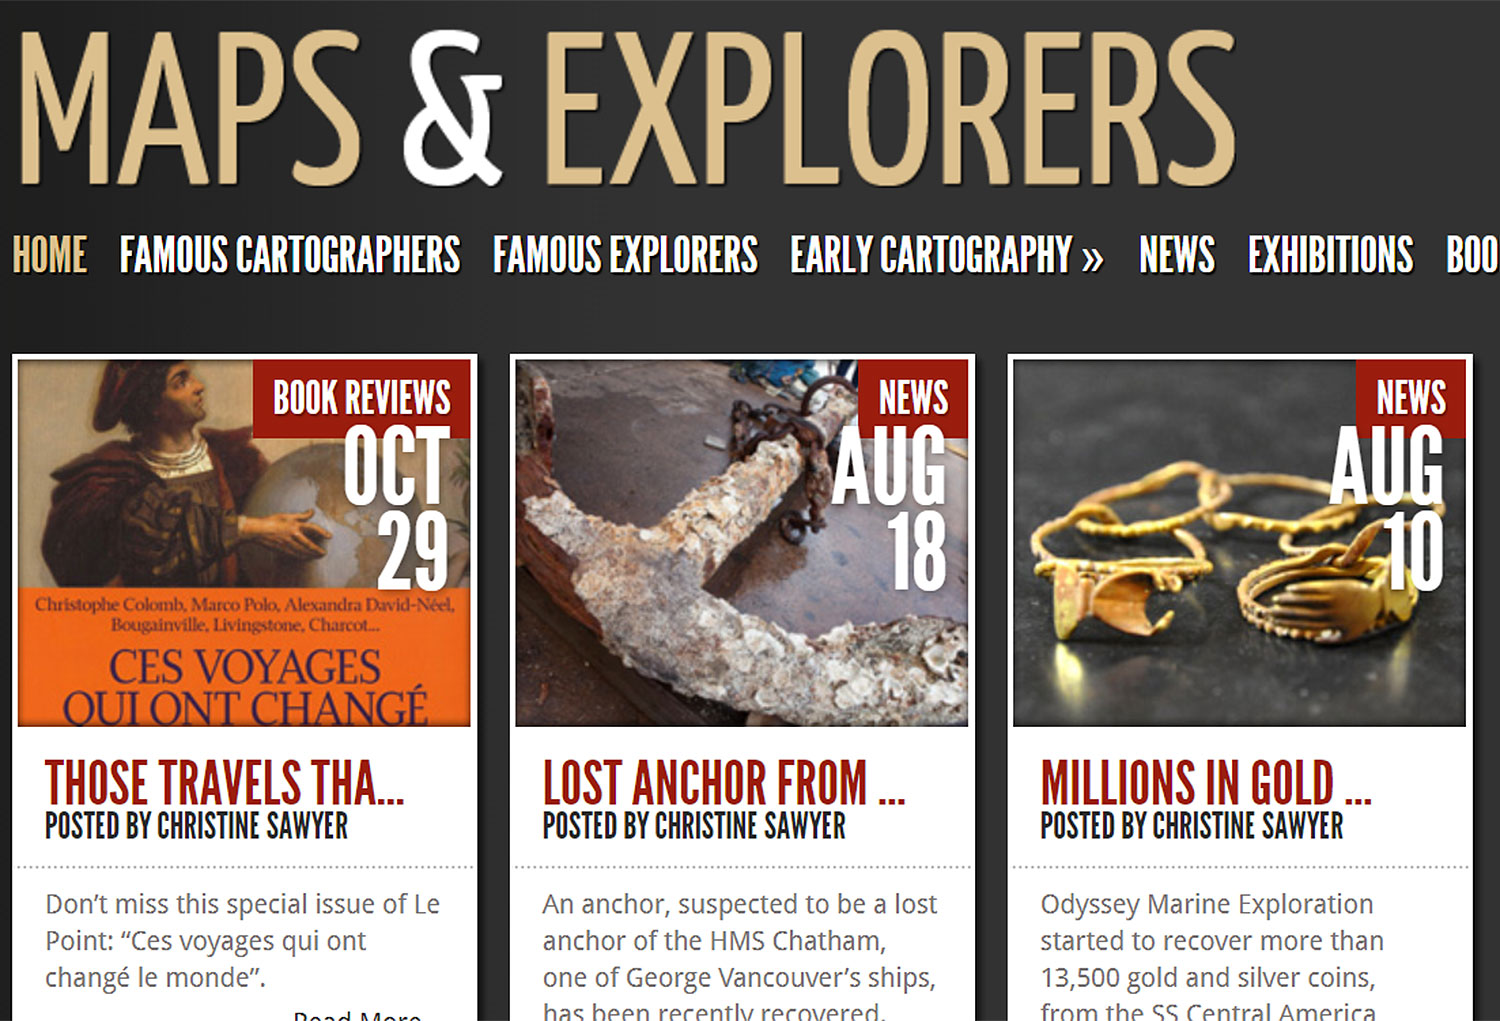 Maps & Explorers Responsive Website